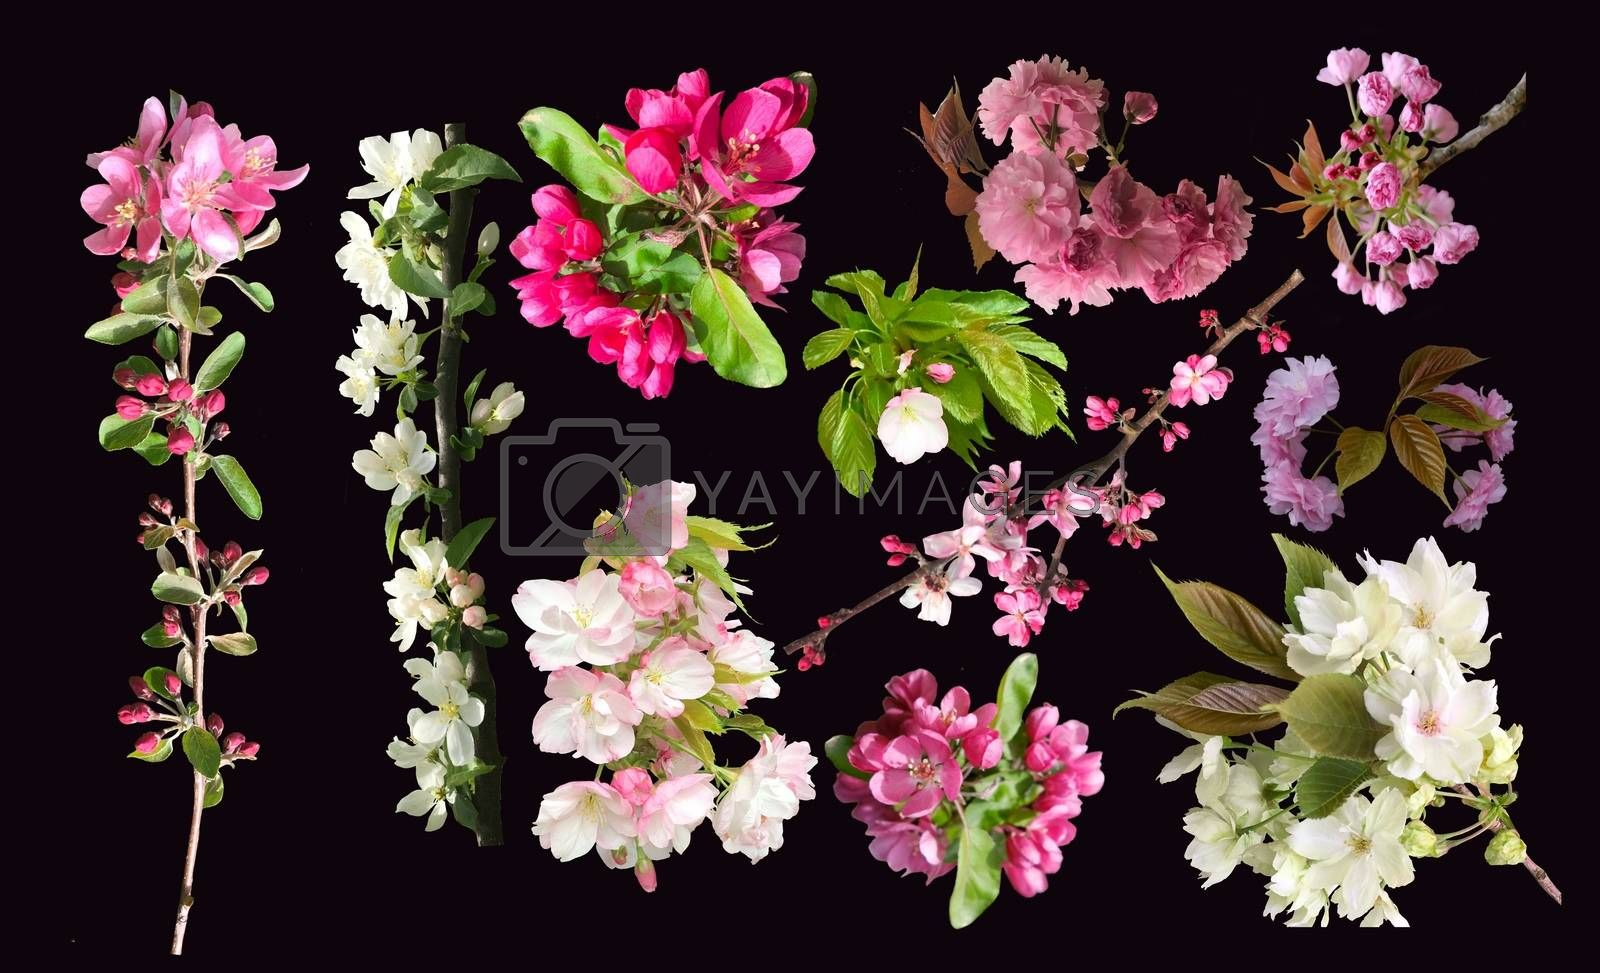 Collection of spring blossom and branch of cherry, sakura and apple tree flowers blooming. Isolated on black background.